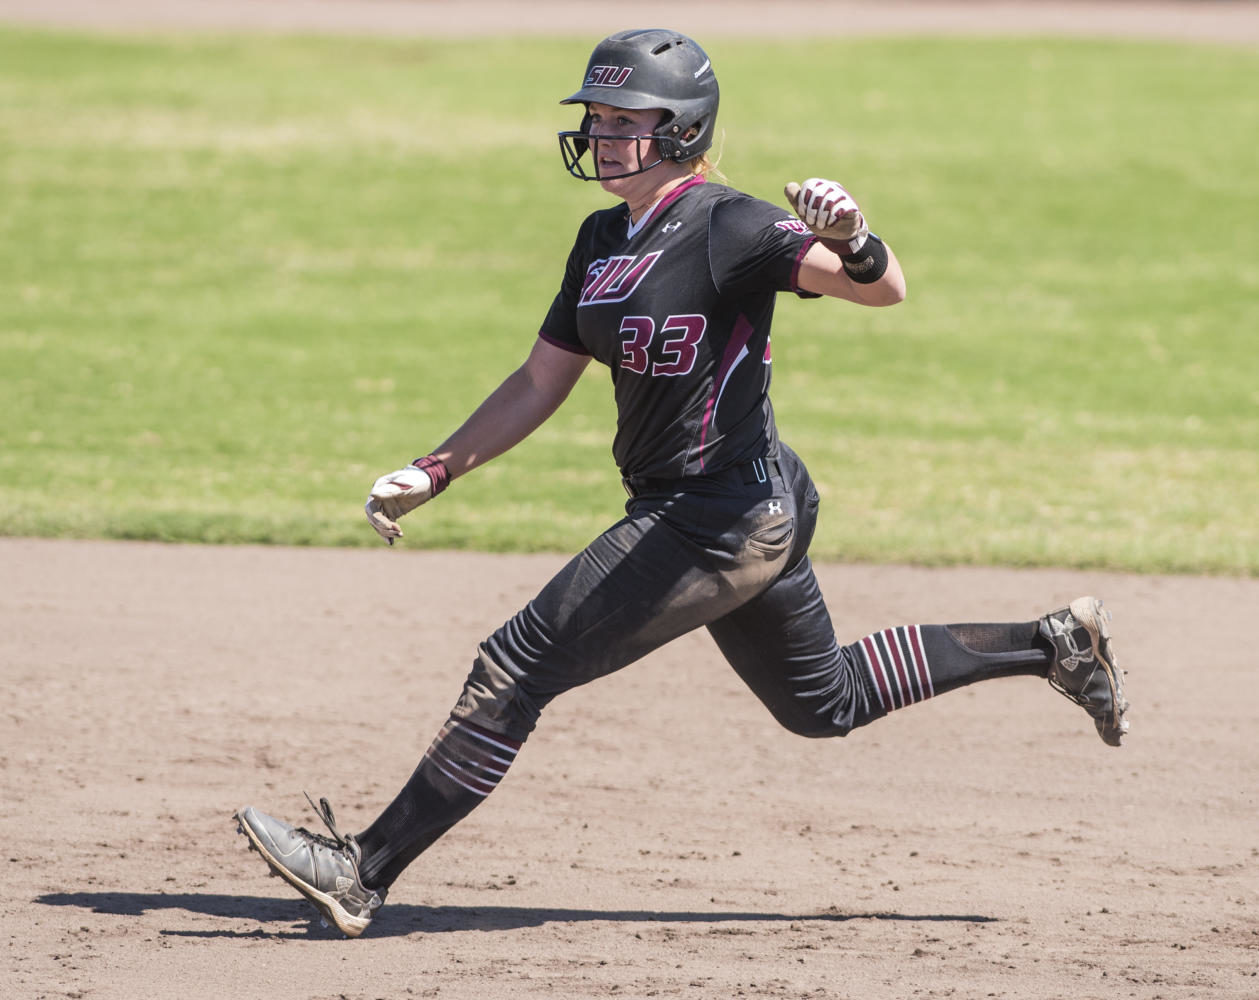 Sophomore infield Kyleigh Decker steals 3rd base Sunday, Sept. 10, 2017, during the Salukis' second game of the season against John A. Logan Vols at Brechtelsbauer Field. (Dylan Nelson | @DylanNelson99)